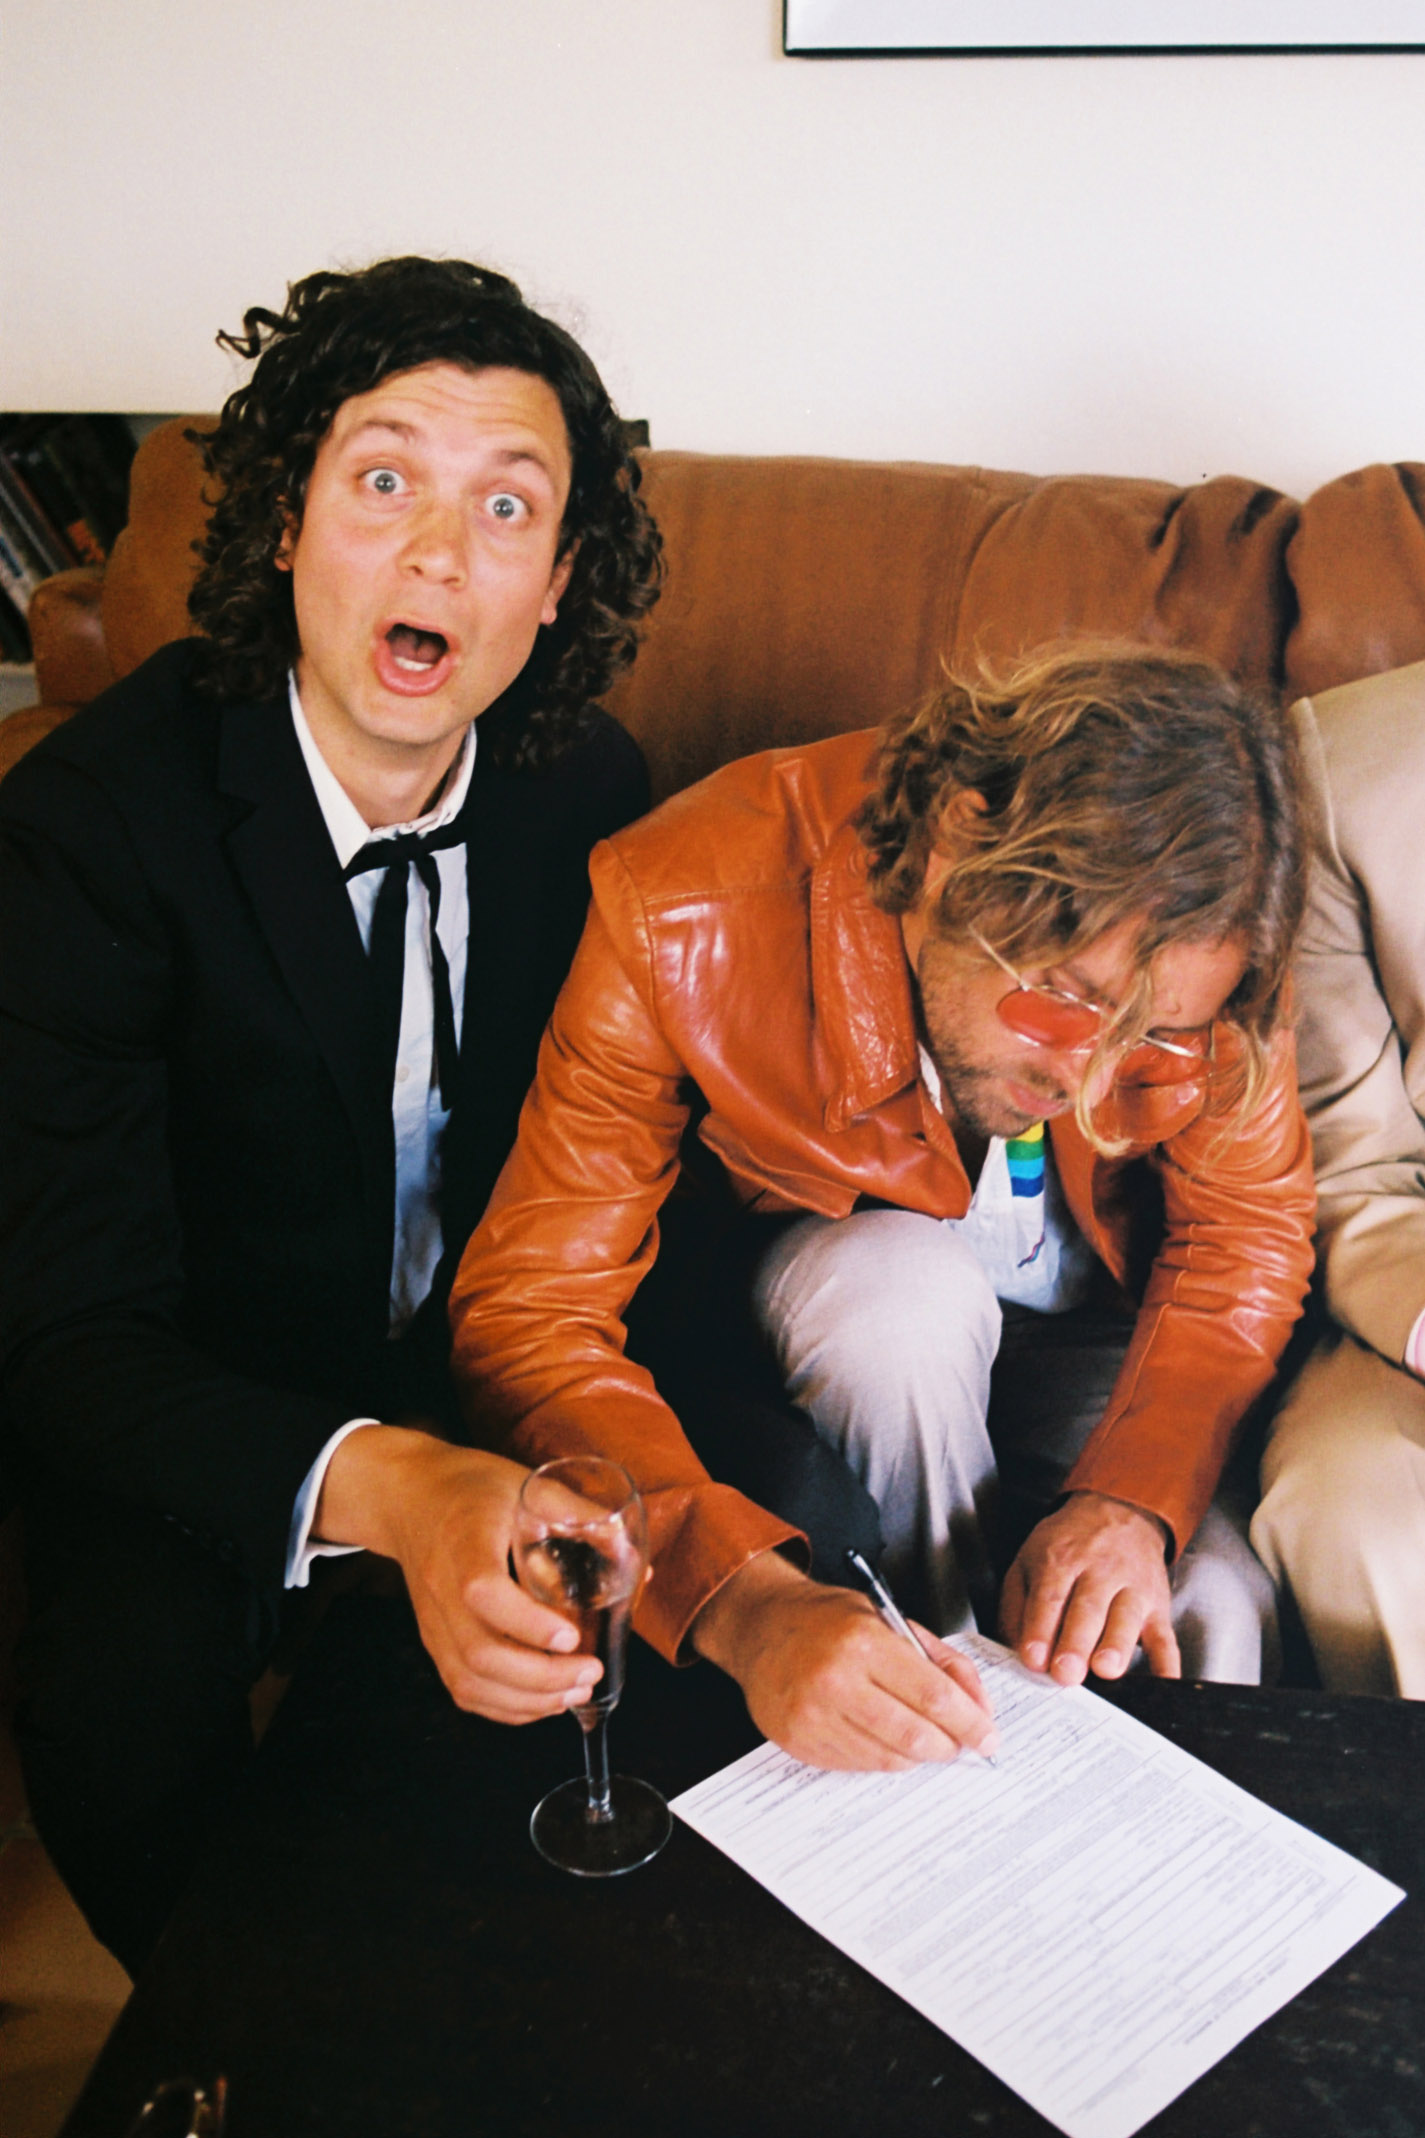 Miller and Nico signing papers.jpg